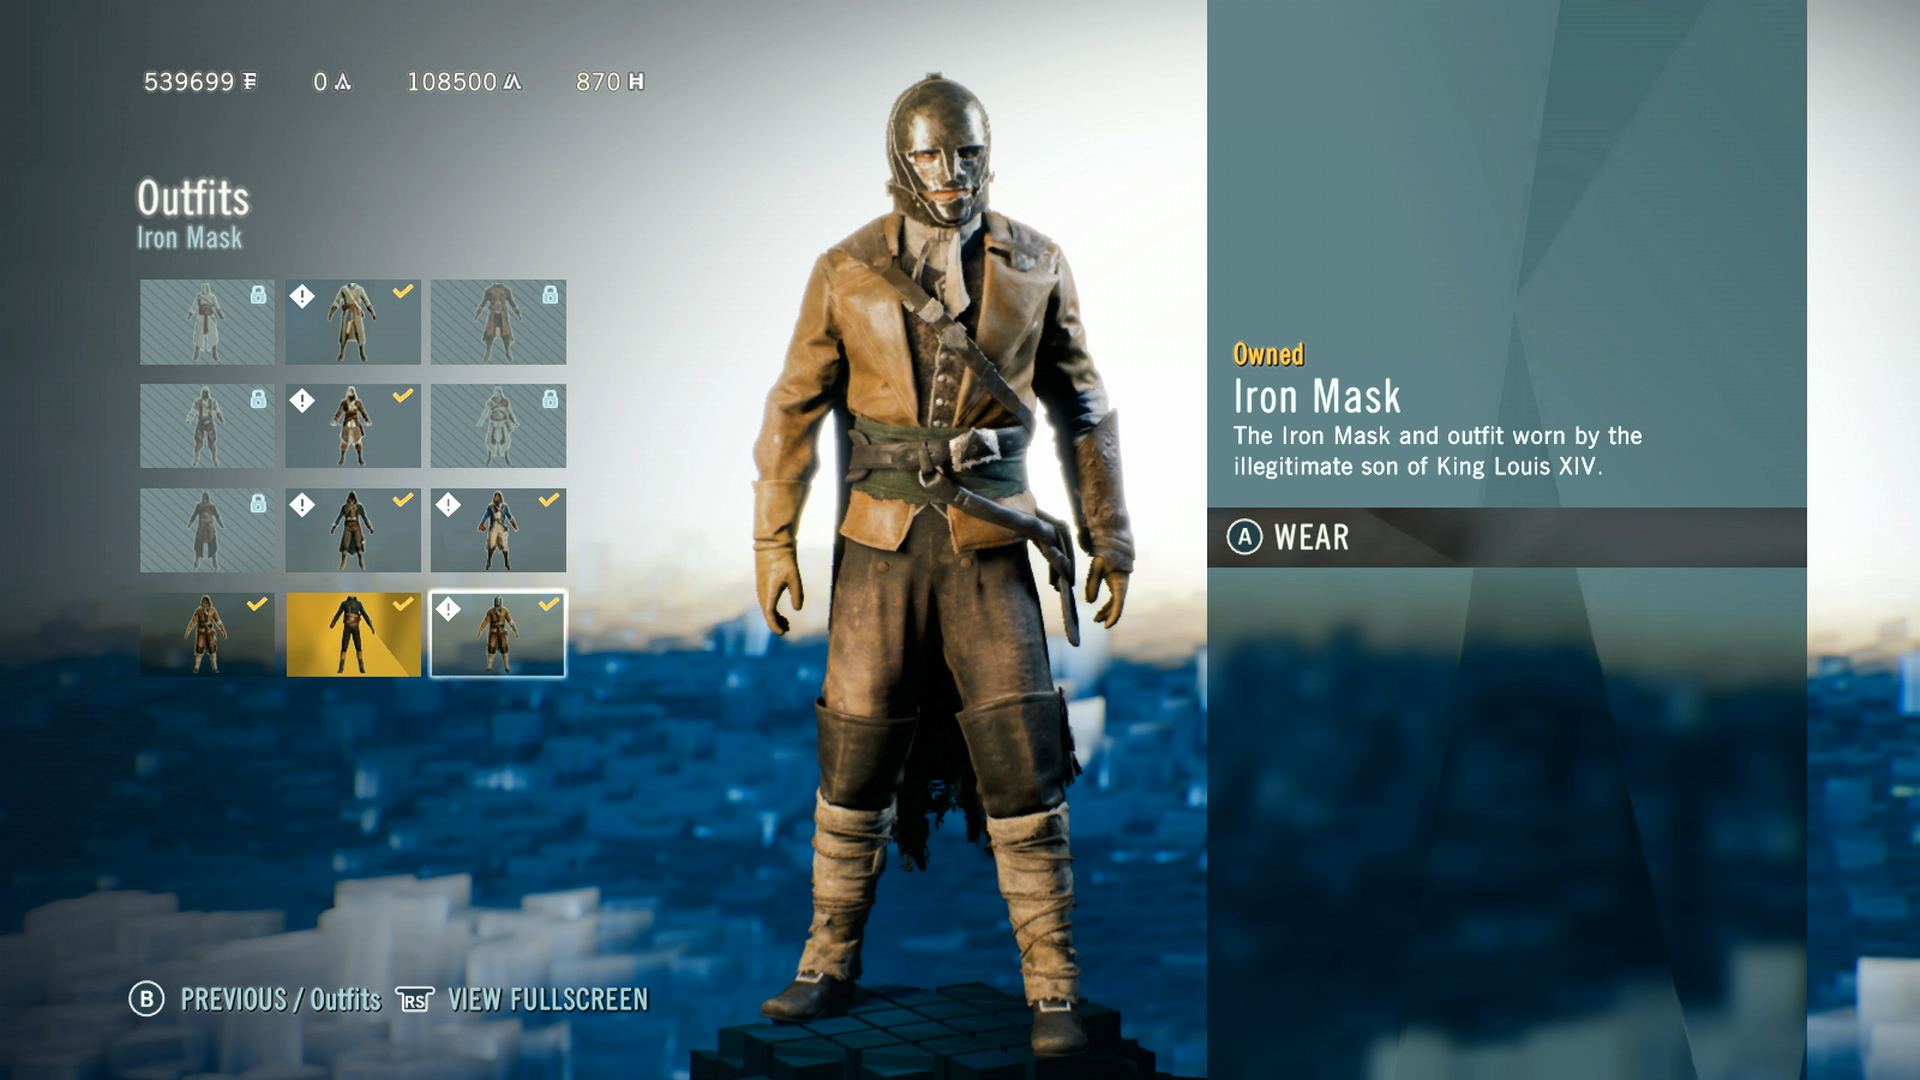 Assassinu2019s Creed Unity u2013 Unlock All New Outfits in Dead Kings DLC Guide | GamesWiki